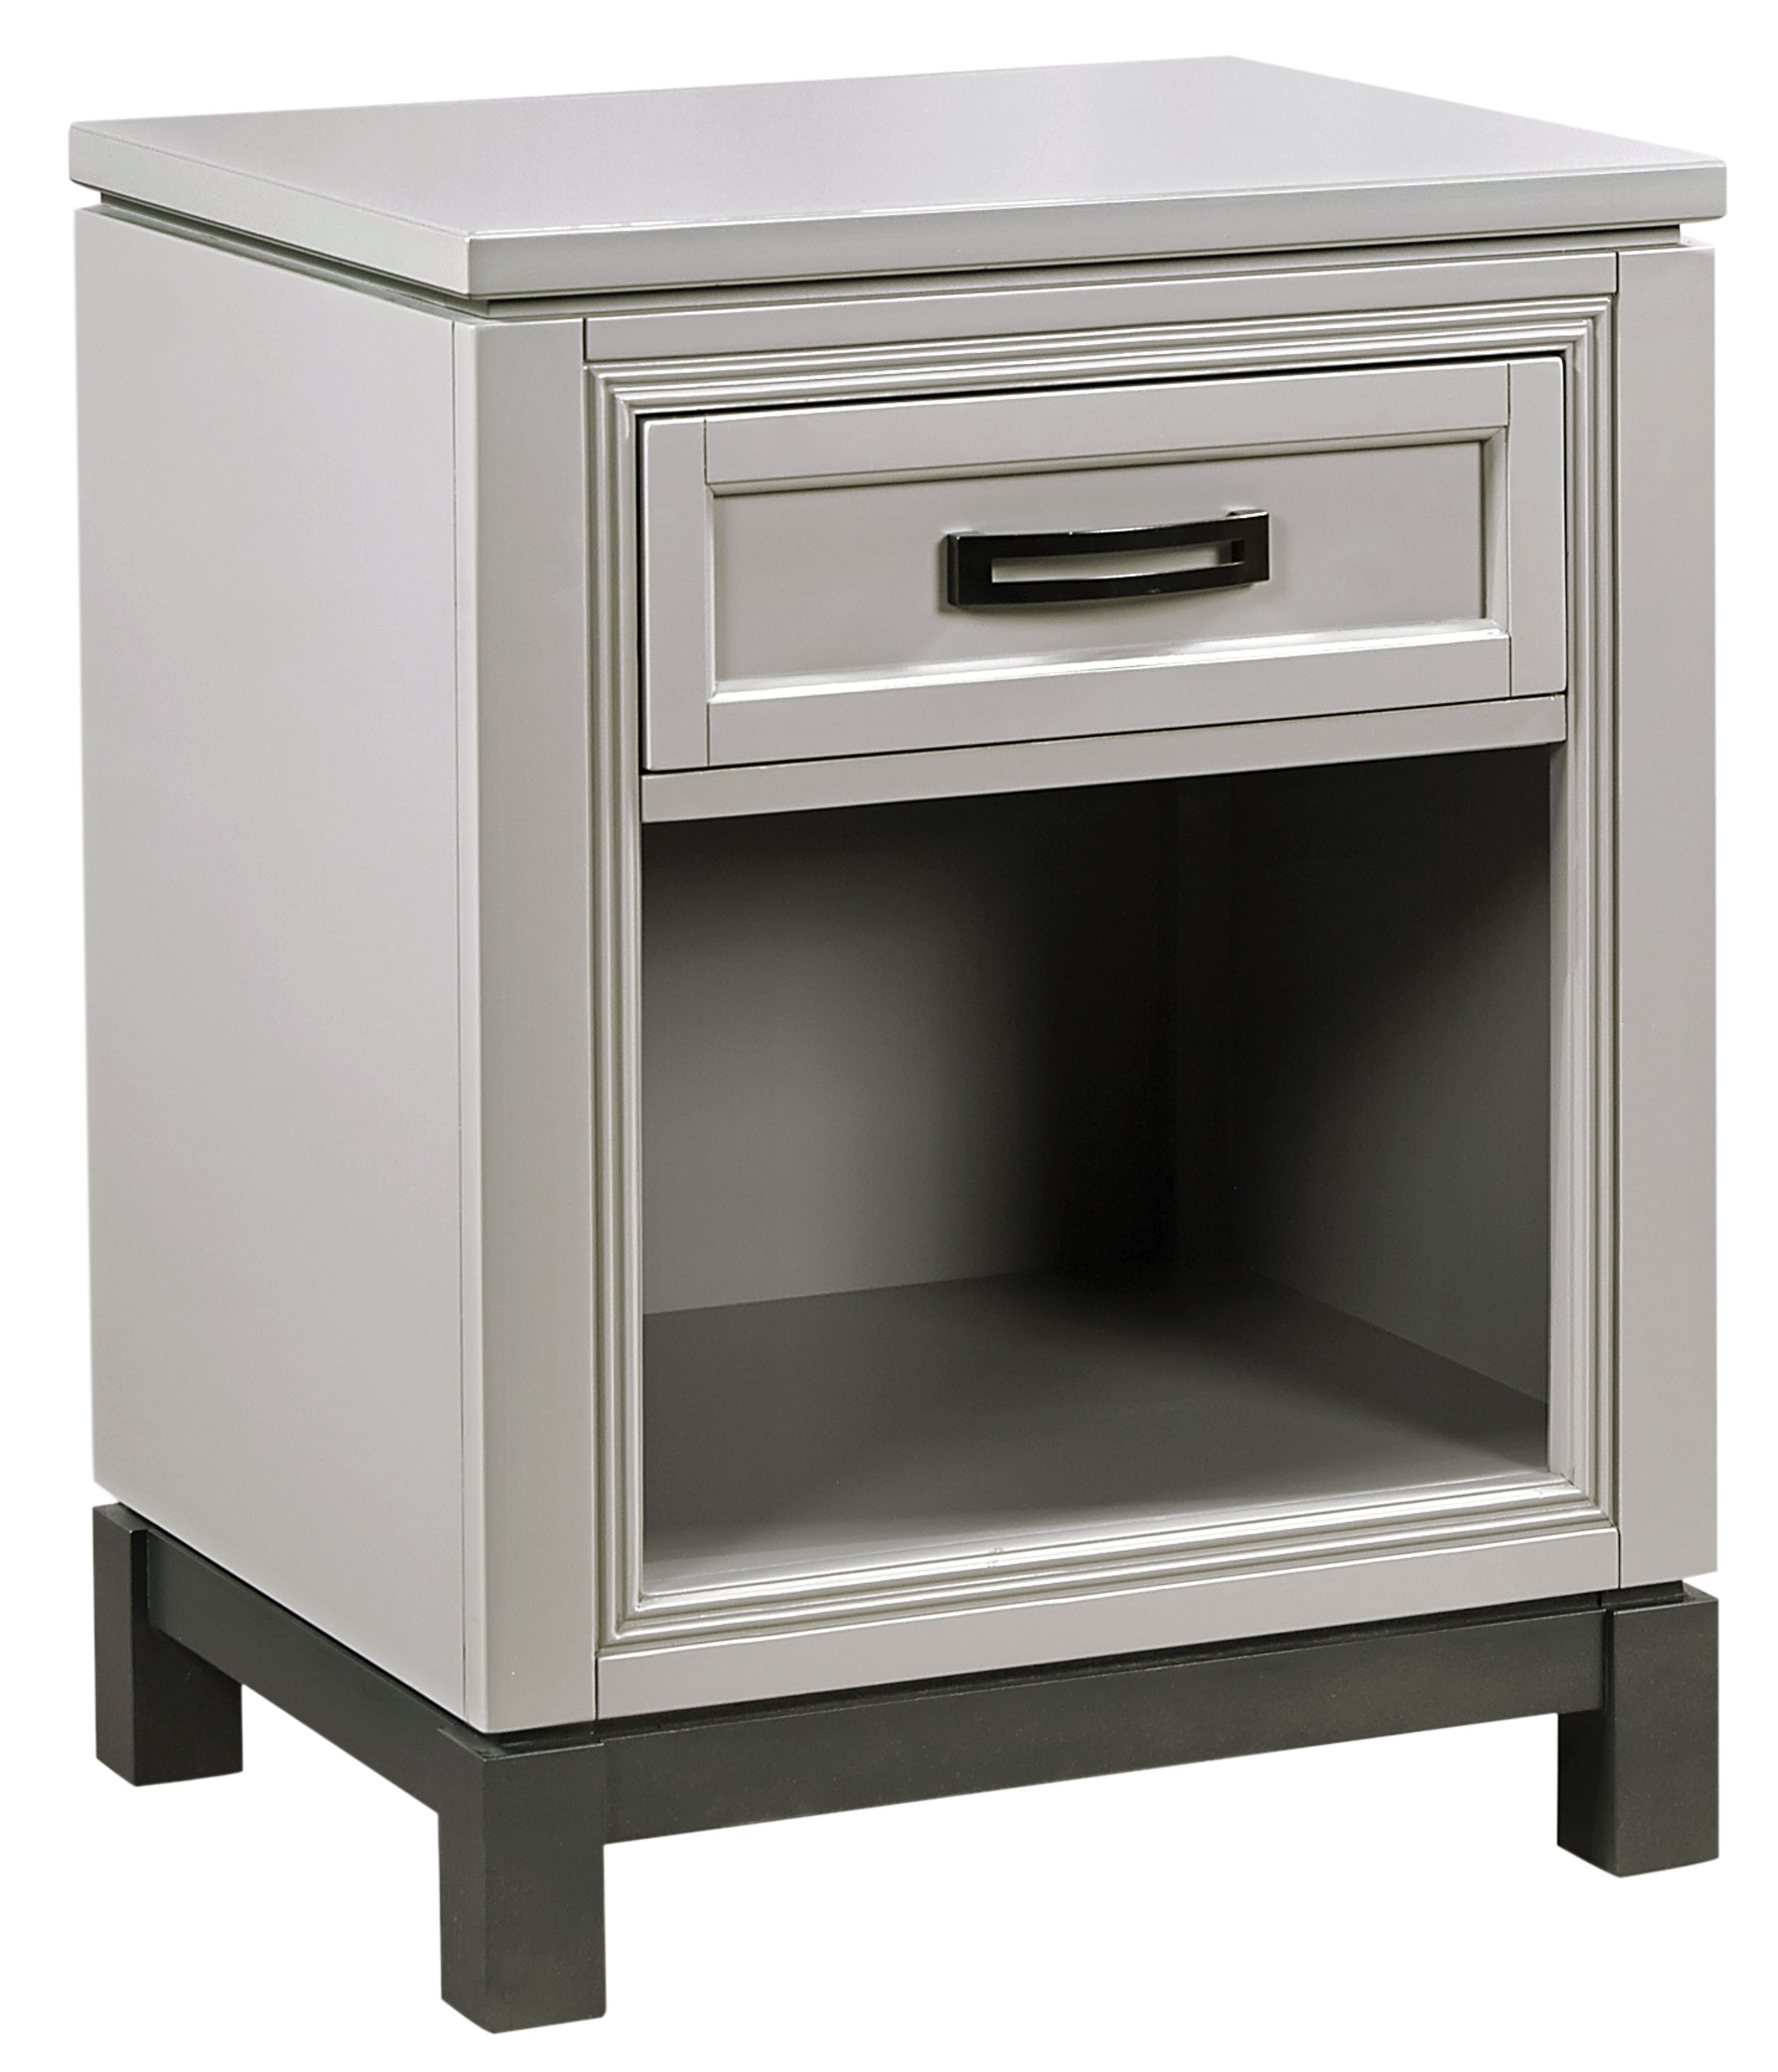 Aspenhome Hyde Park Nightstand  - Item Number: I32-451N